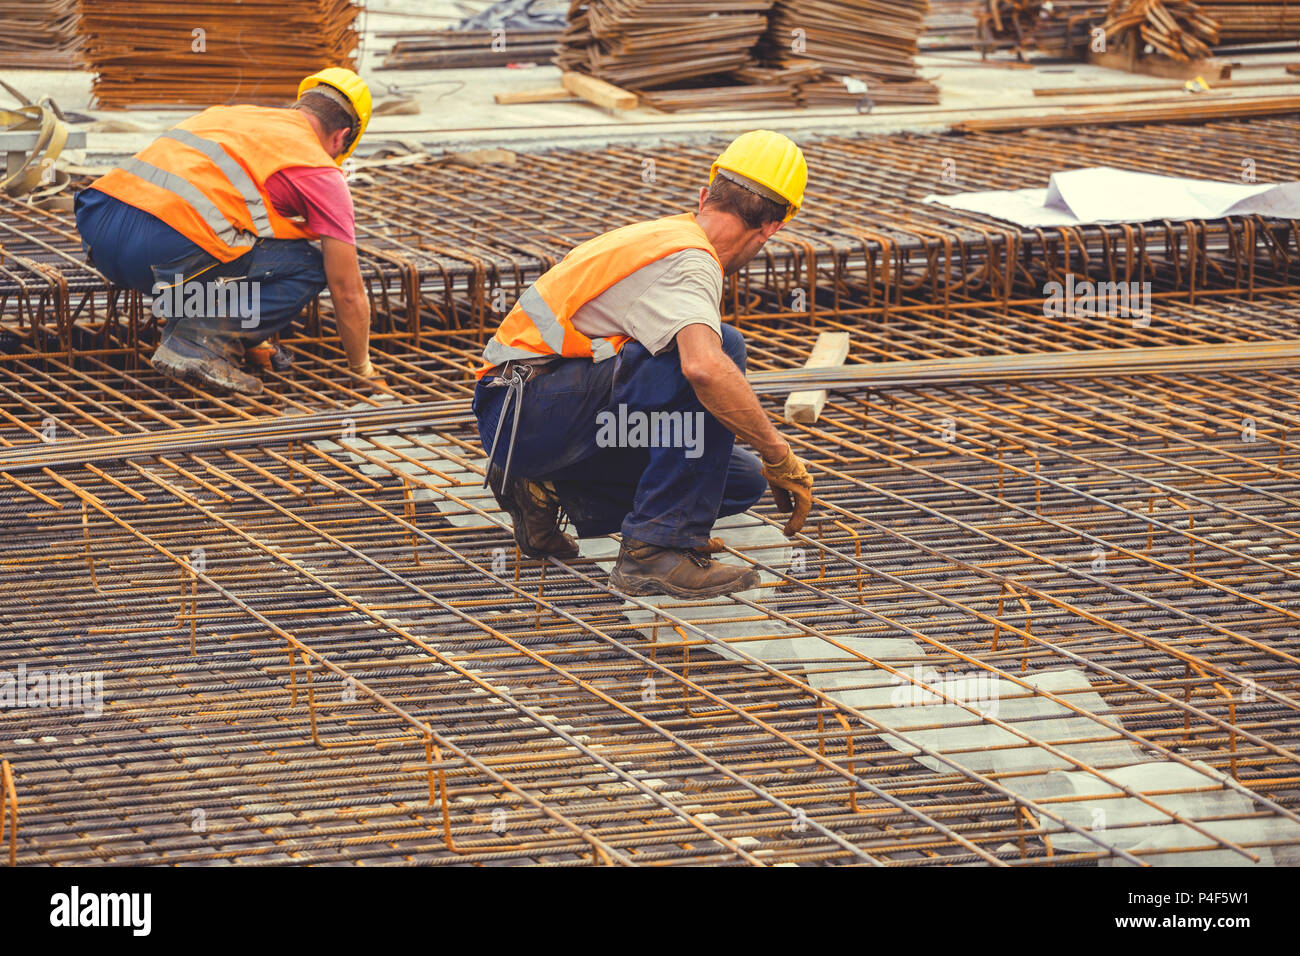 Ironworkers Stock Photos & Ironworkers Stock Images - Alamy